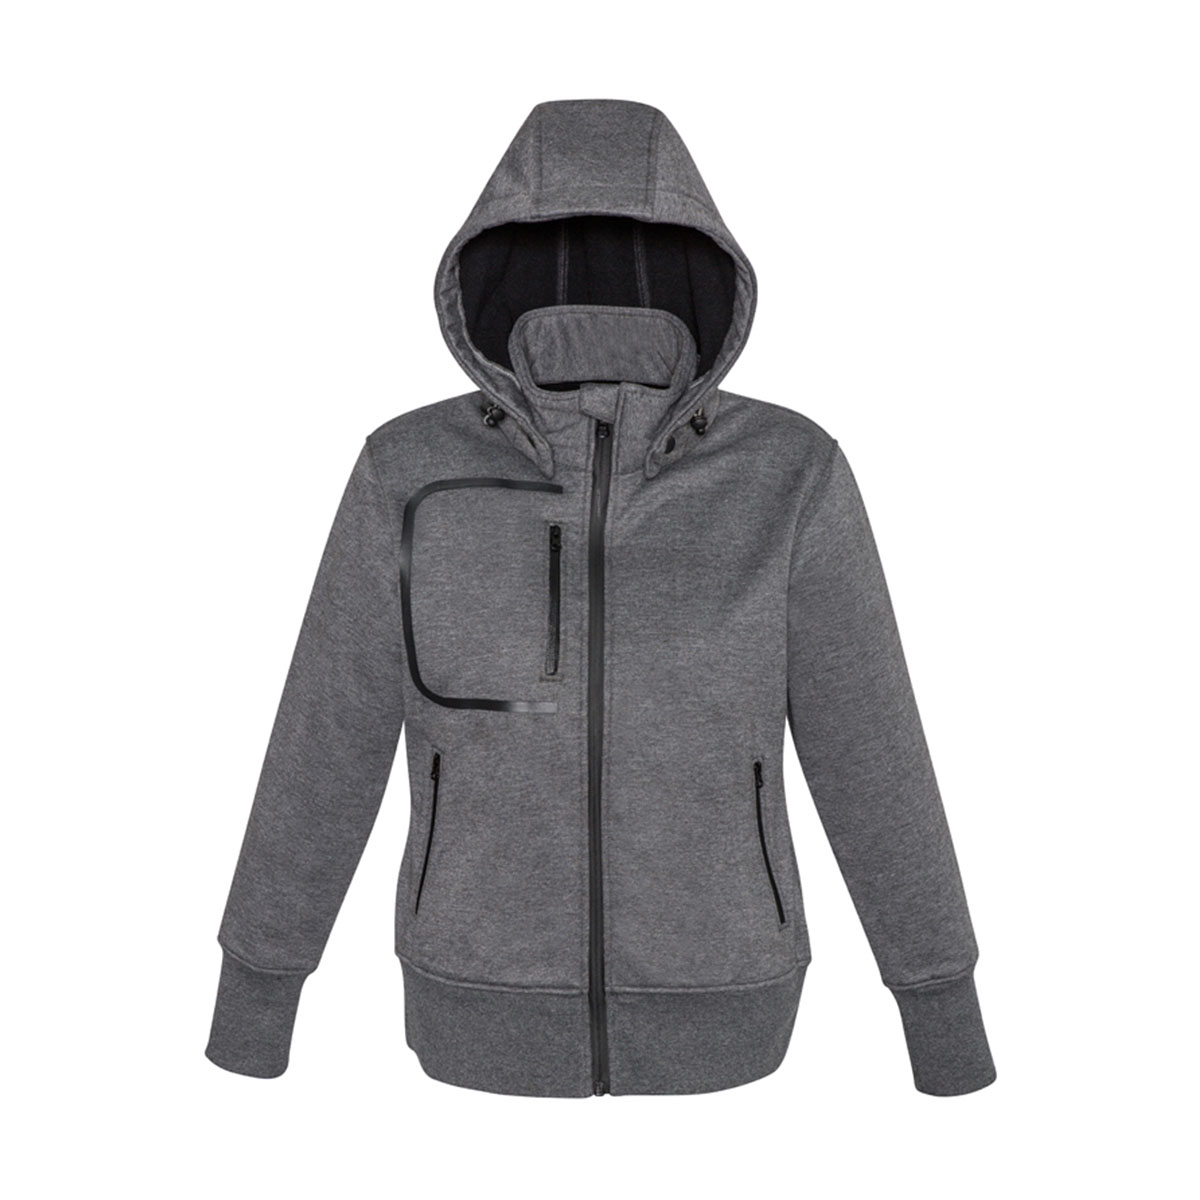 Ladies Oslo Jacket-Grey Black